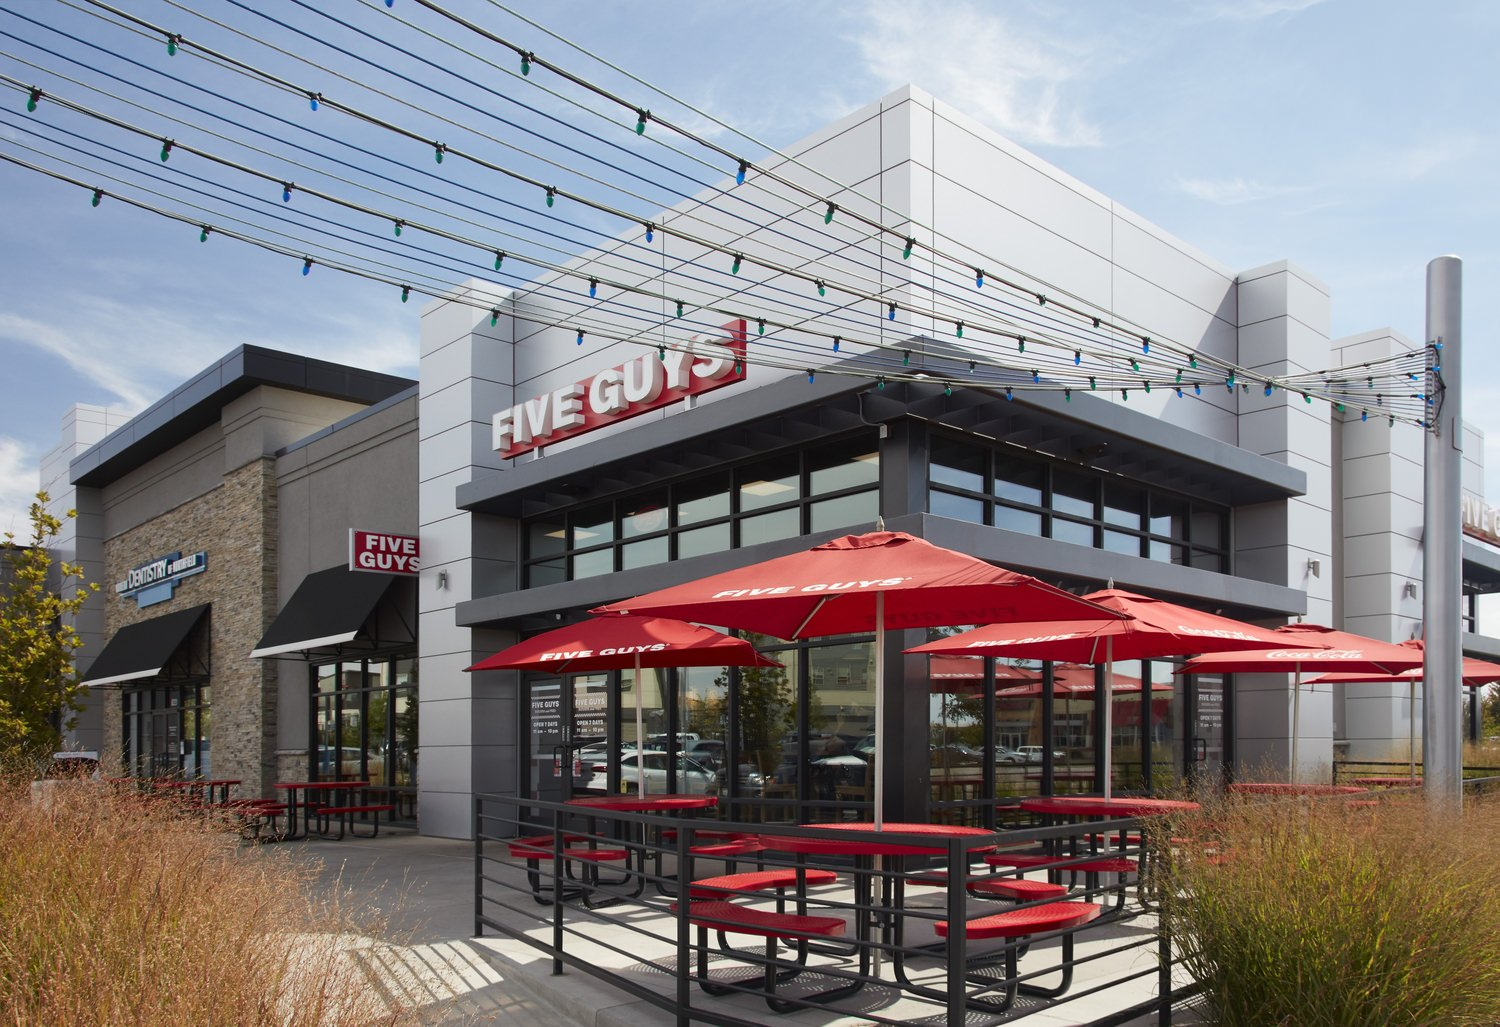 Outdoor patio of a Five Guys restaurant that has red tables and chairs with umbrellas.